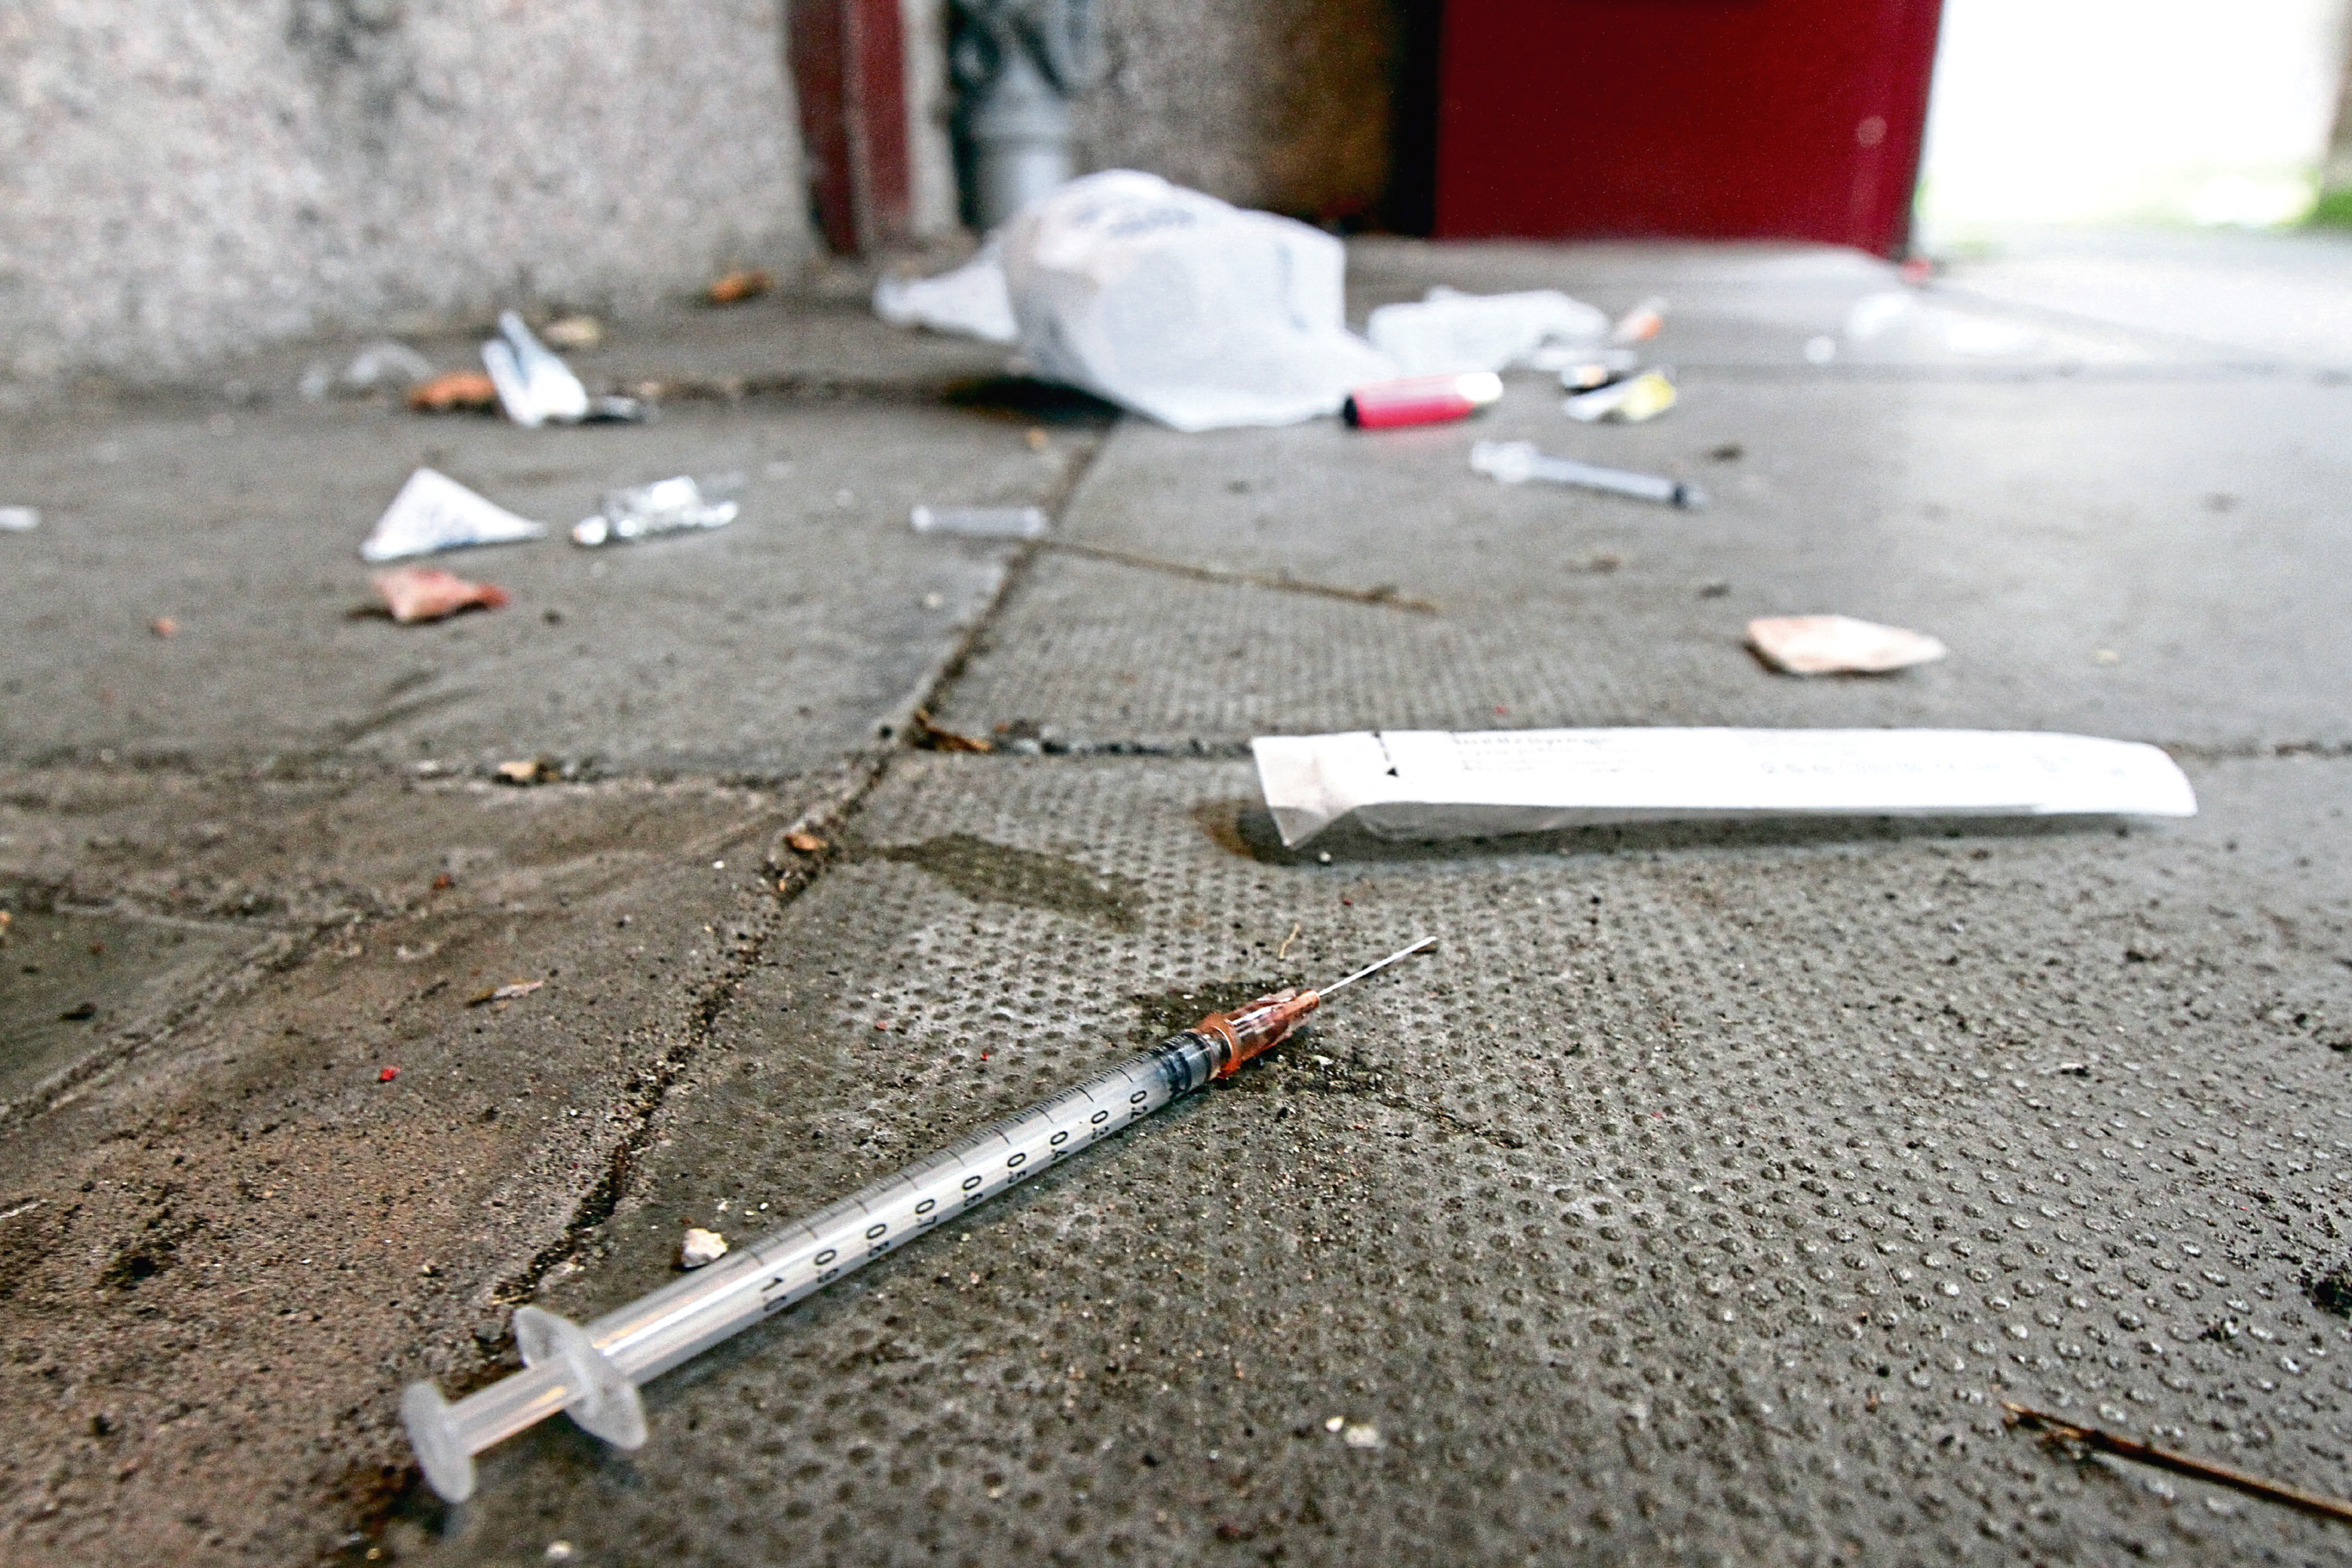 The Scottish Greens co-leader is among those calling for an overhaul of Scotland's drug laws